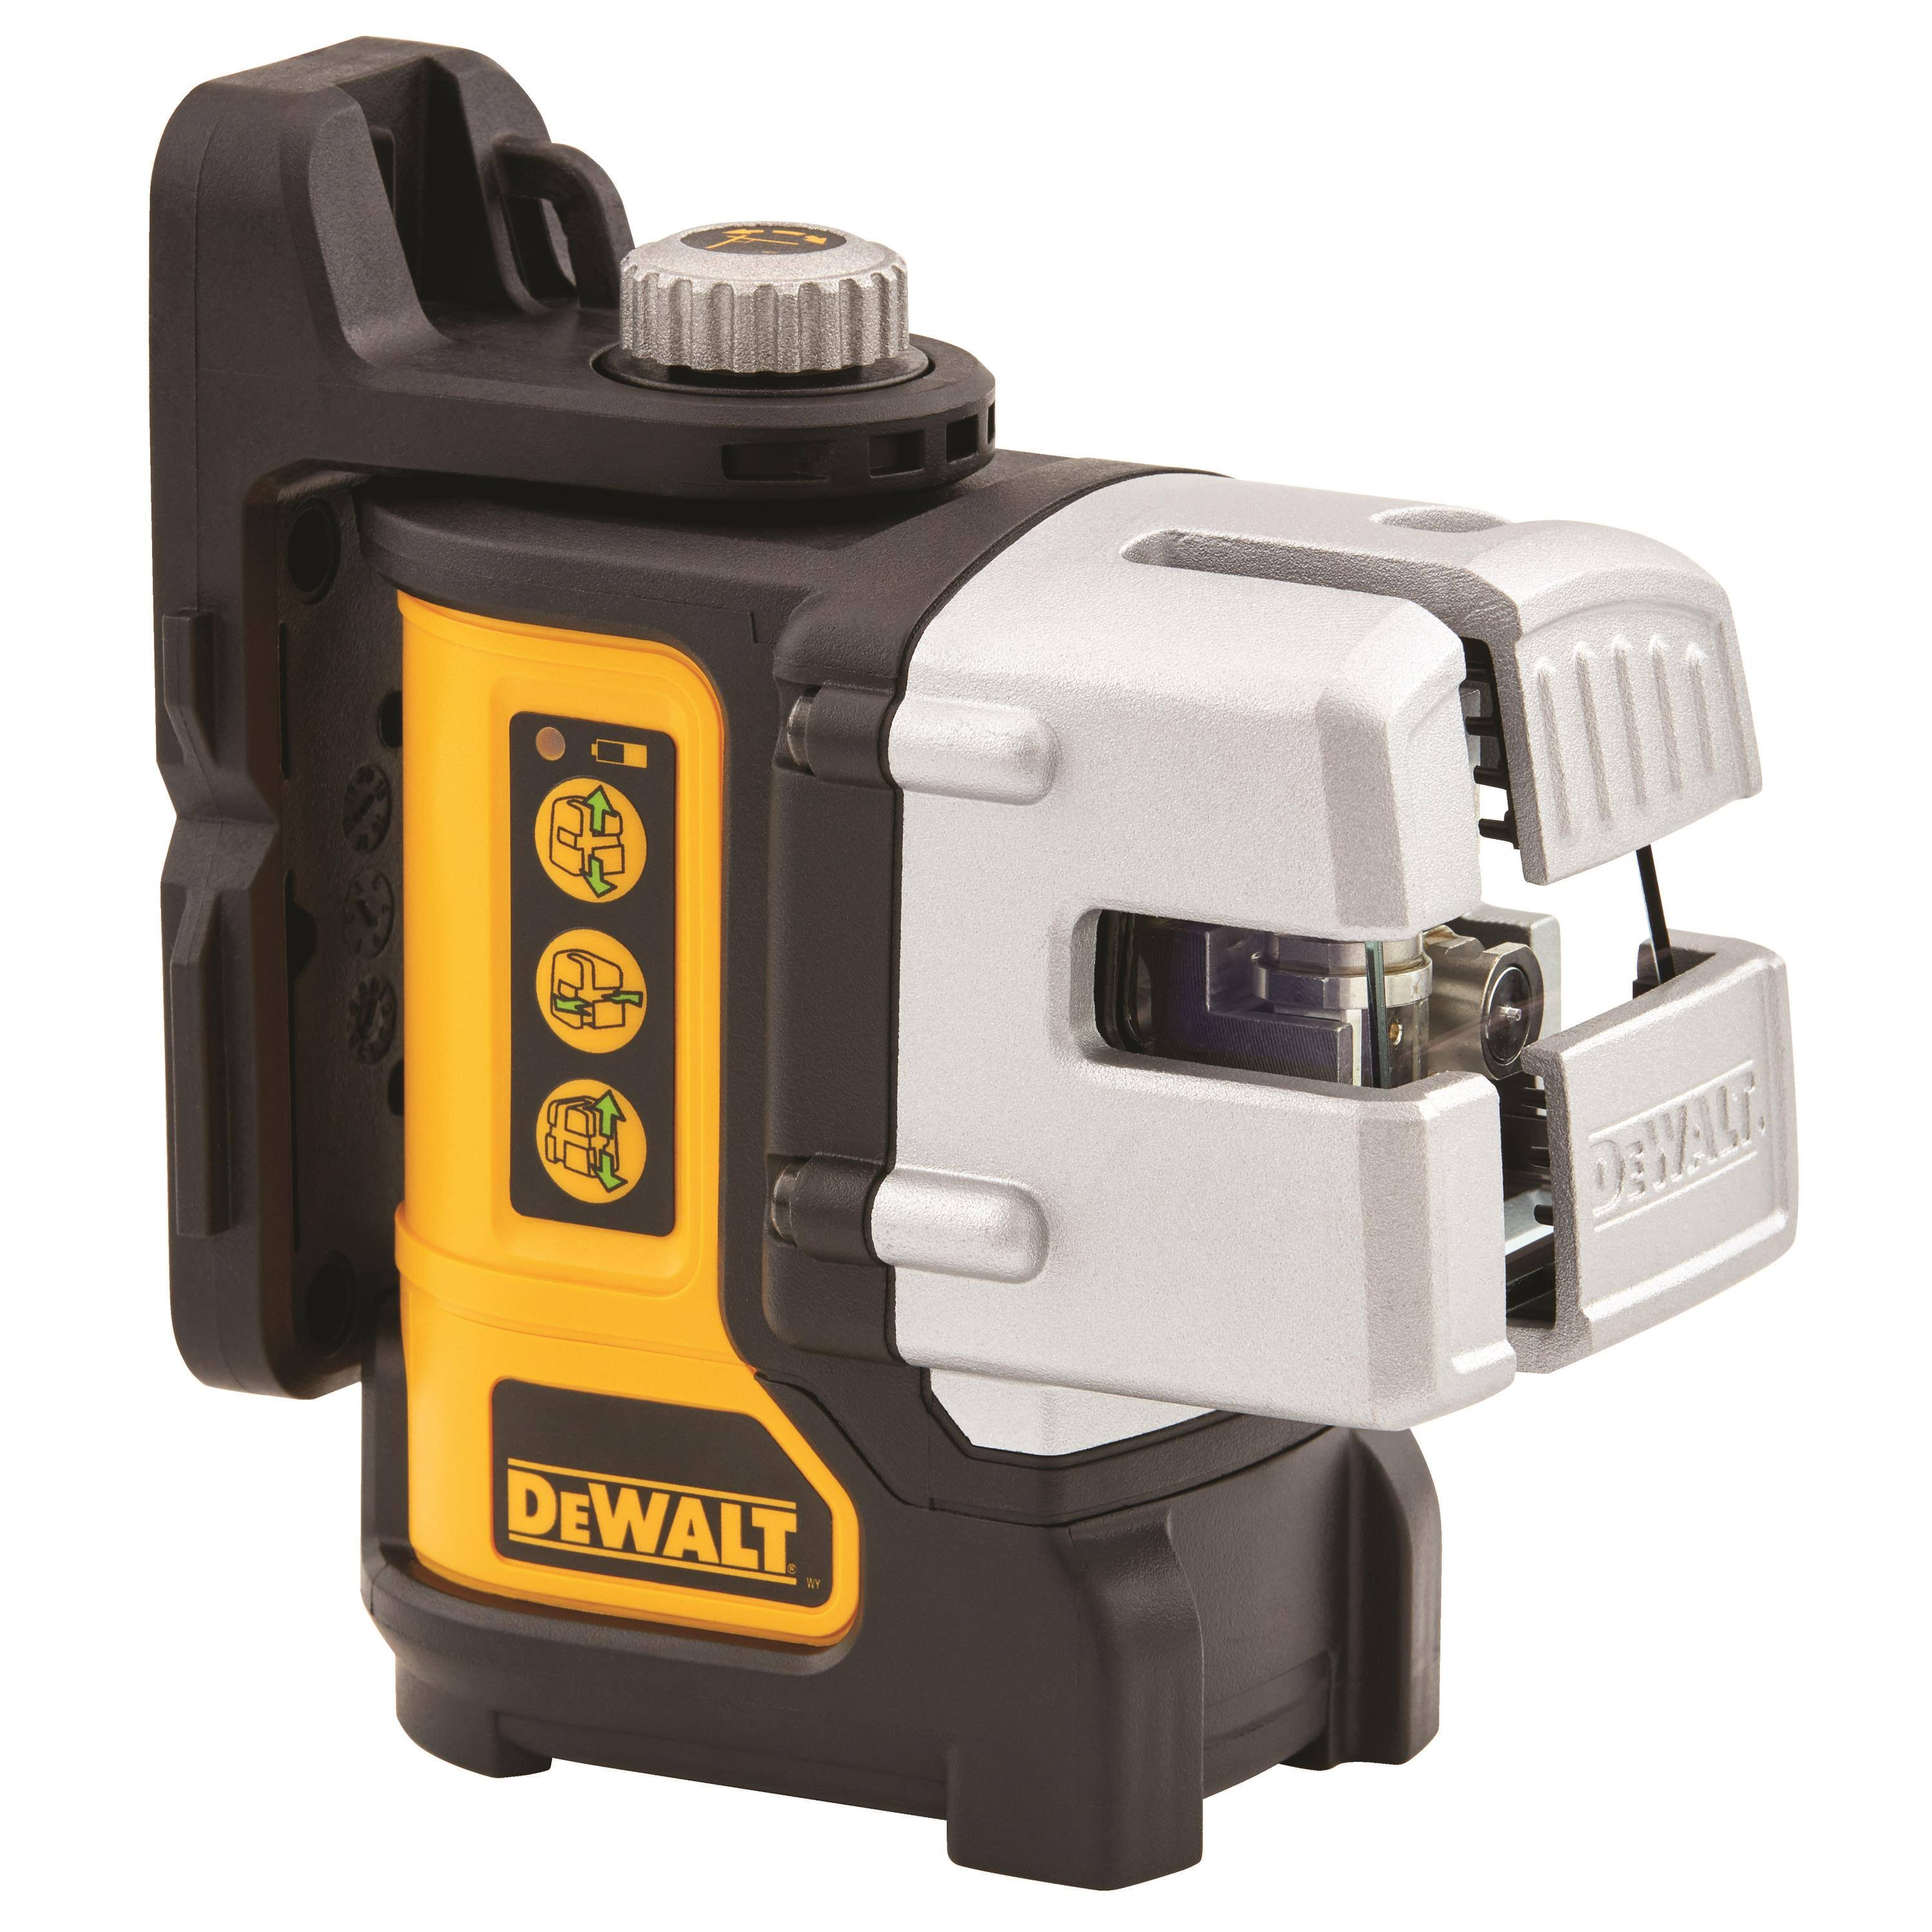 DeWalt DW089CG 3 Line Green Laser Level